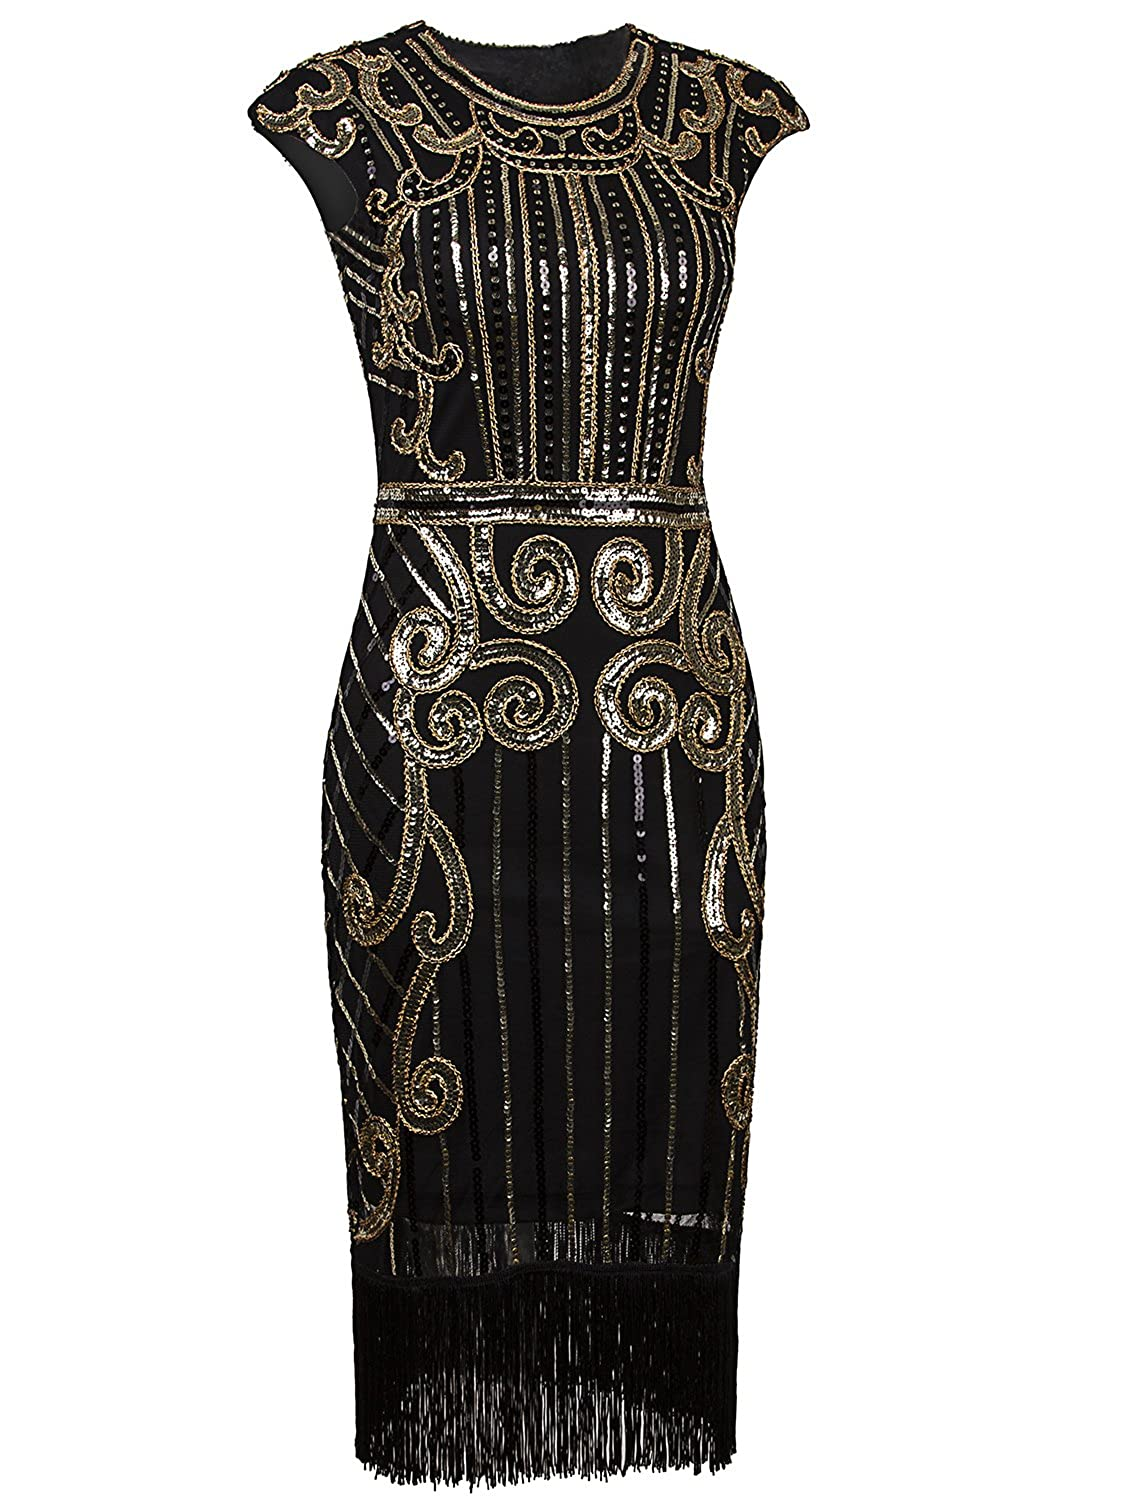 Flapper Costumes, Flapper Girl Costume Vijiv 1920s Vintage Inspired Sequin Embellished Fringe Long Gatsby Flapper Dress $33.99 AT vintagedancer.com